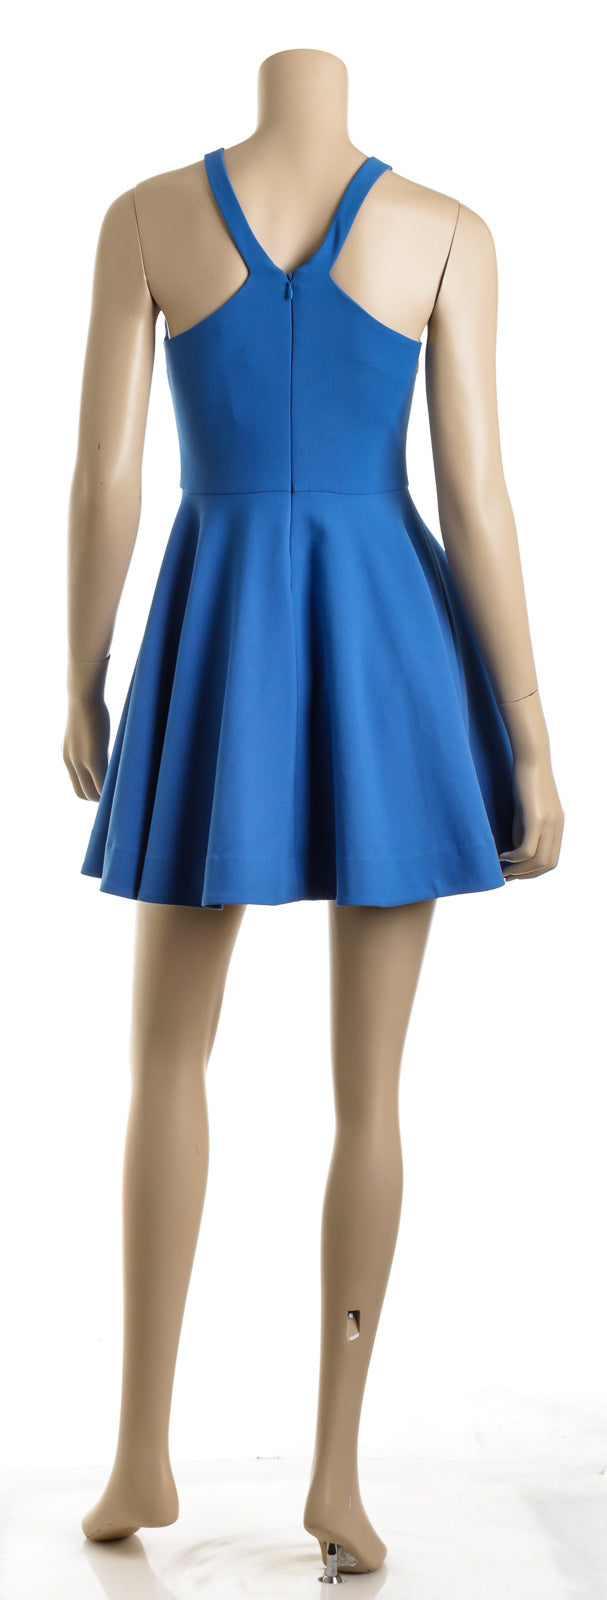 Elizabeth and James Blue Knit Racerback Flair Skirt Dress (Size 4)